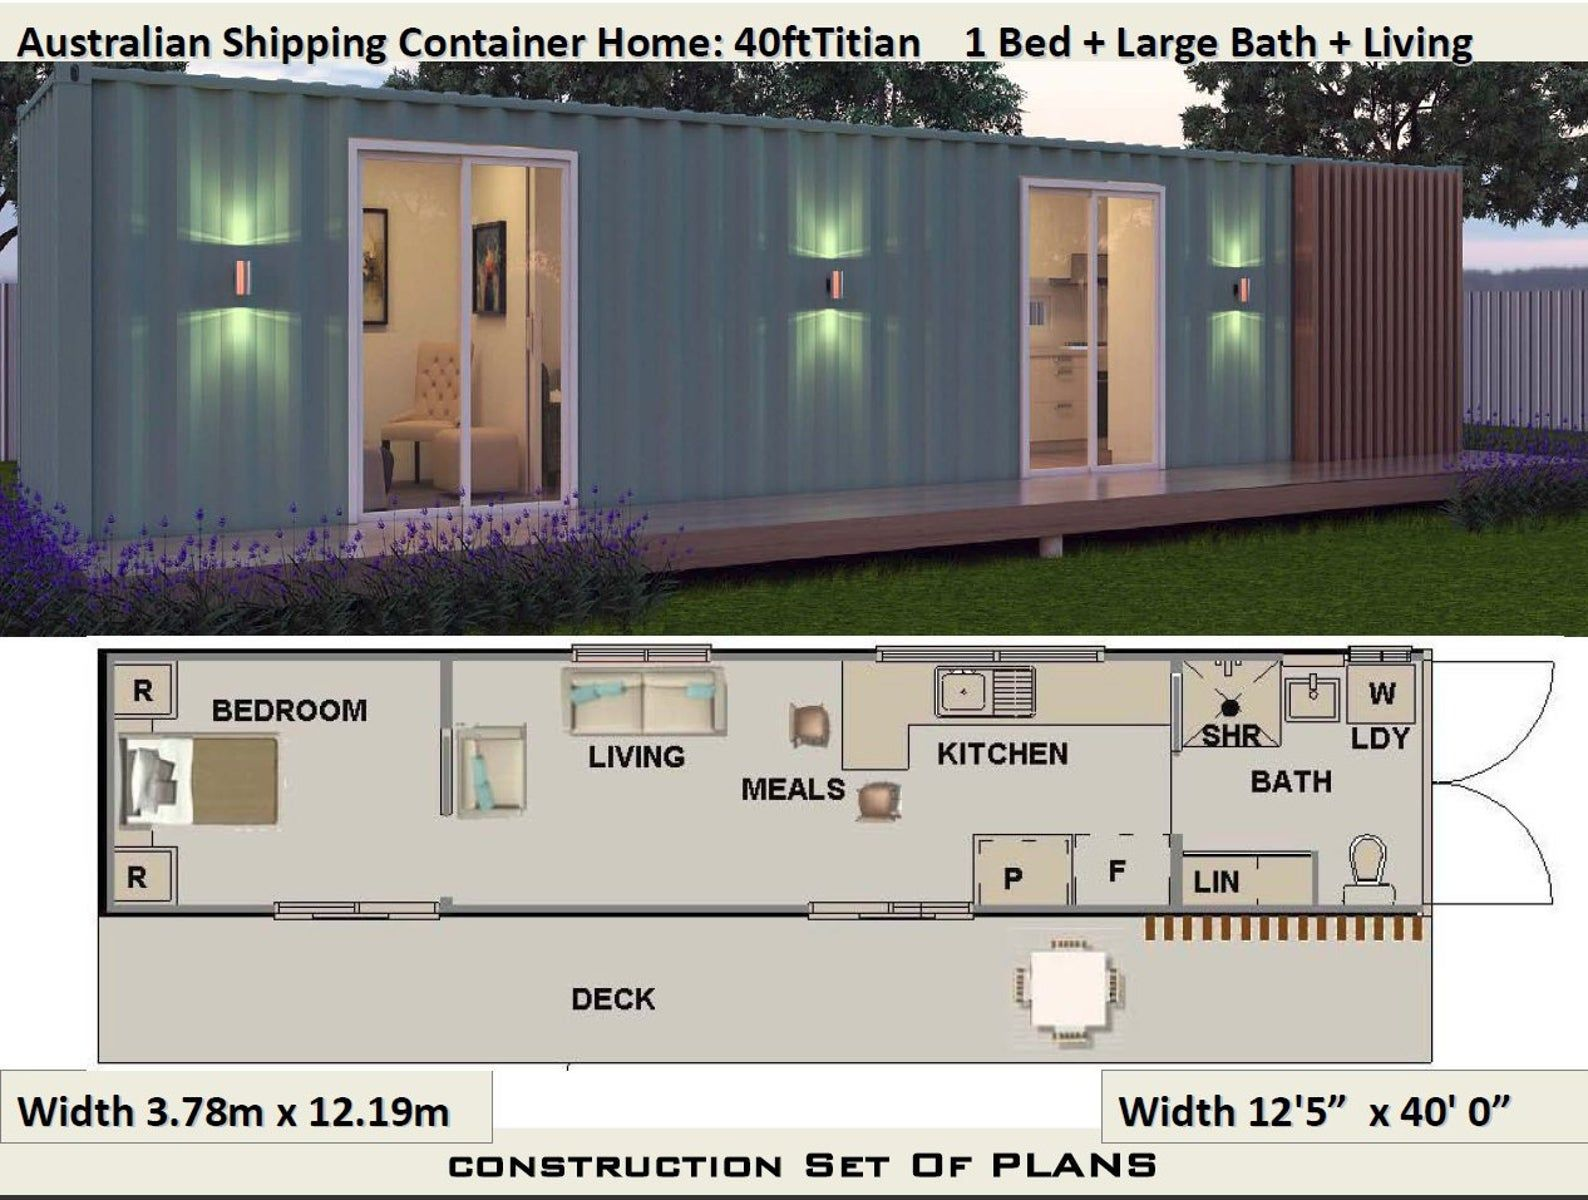 40 Foot Shipping Container Home Full Construction House Etsy Container House Shipping Container House Plans Container House Plans